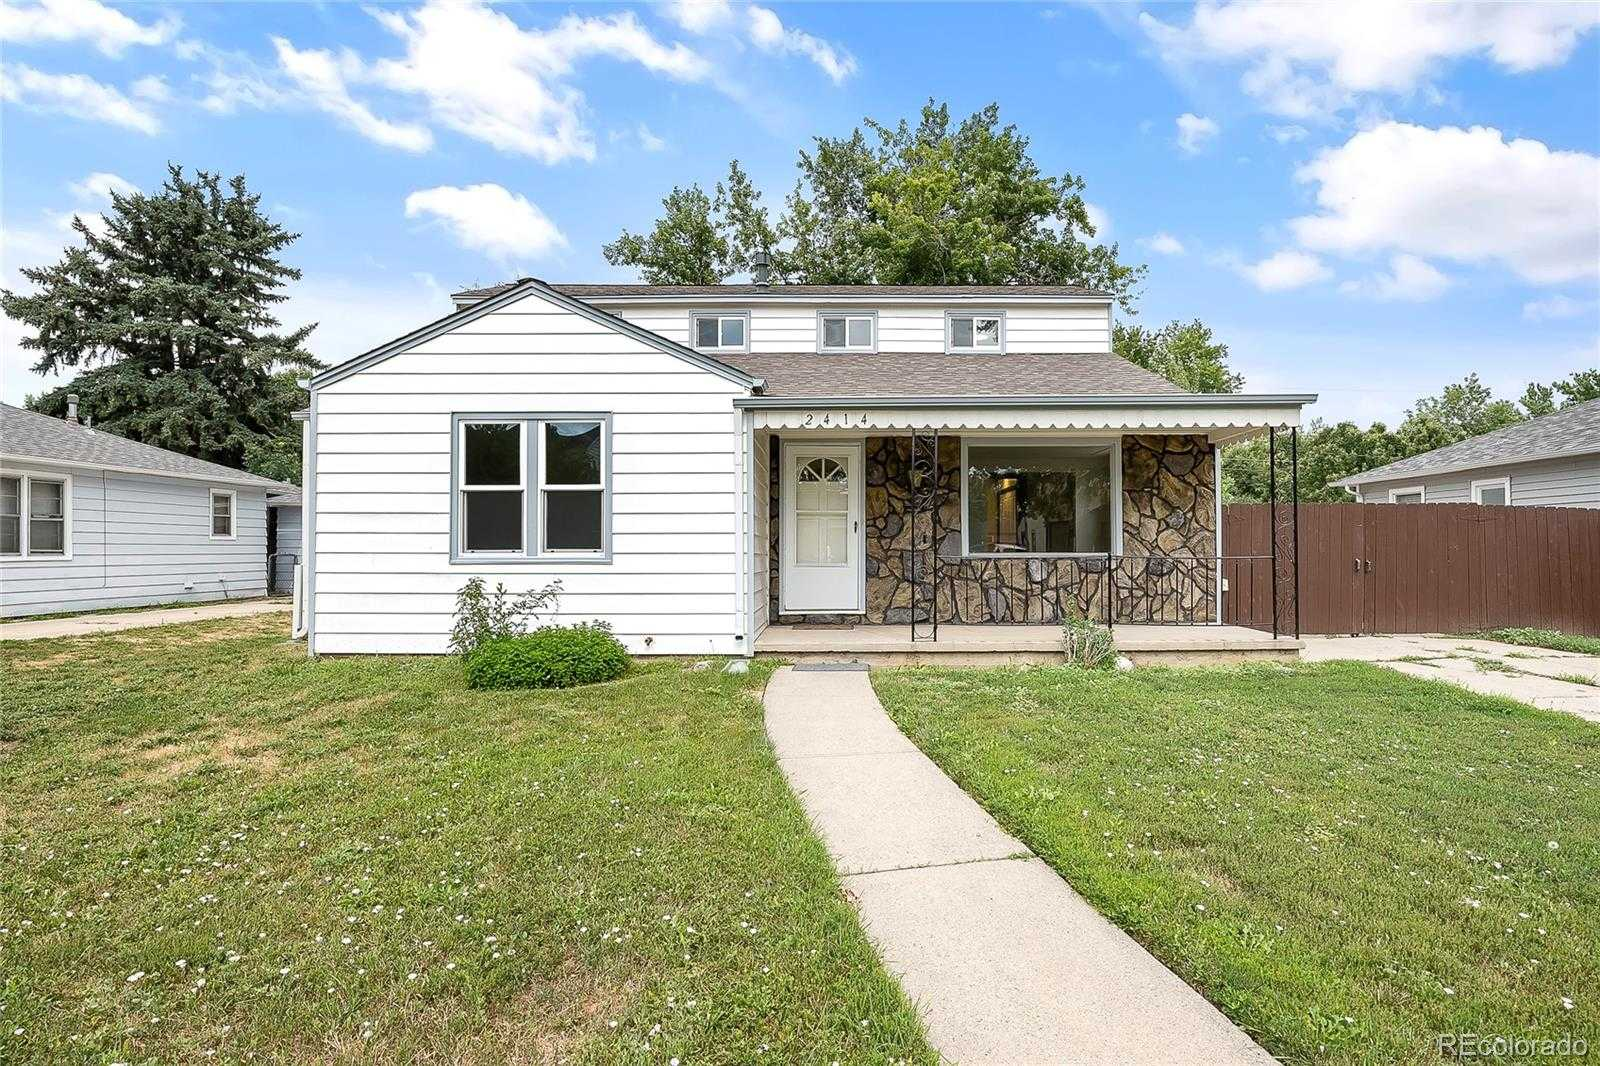 $615,000 - 4Br/2Ba -  for Sale in Edgewater, Edgewater